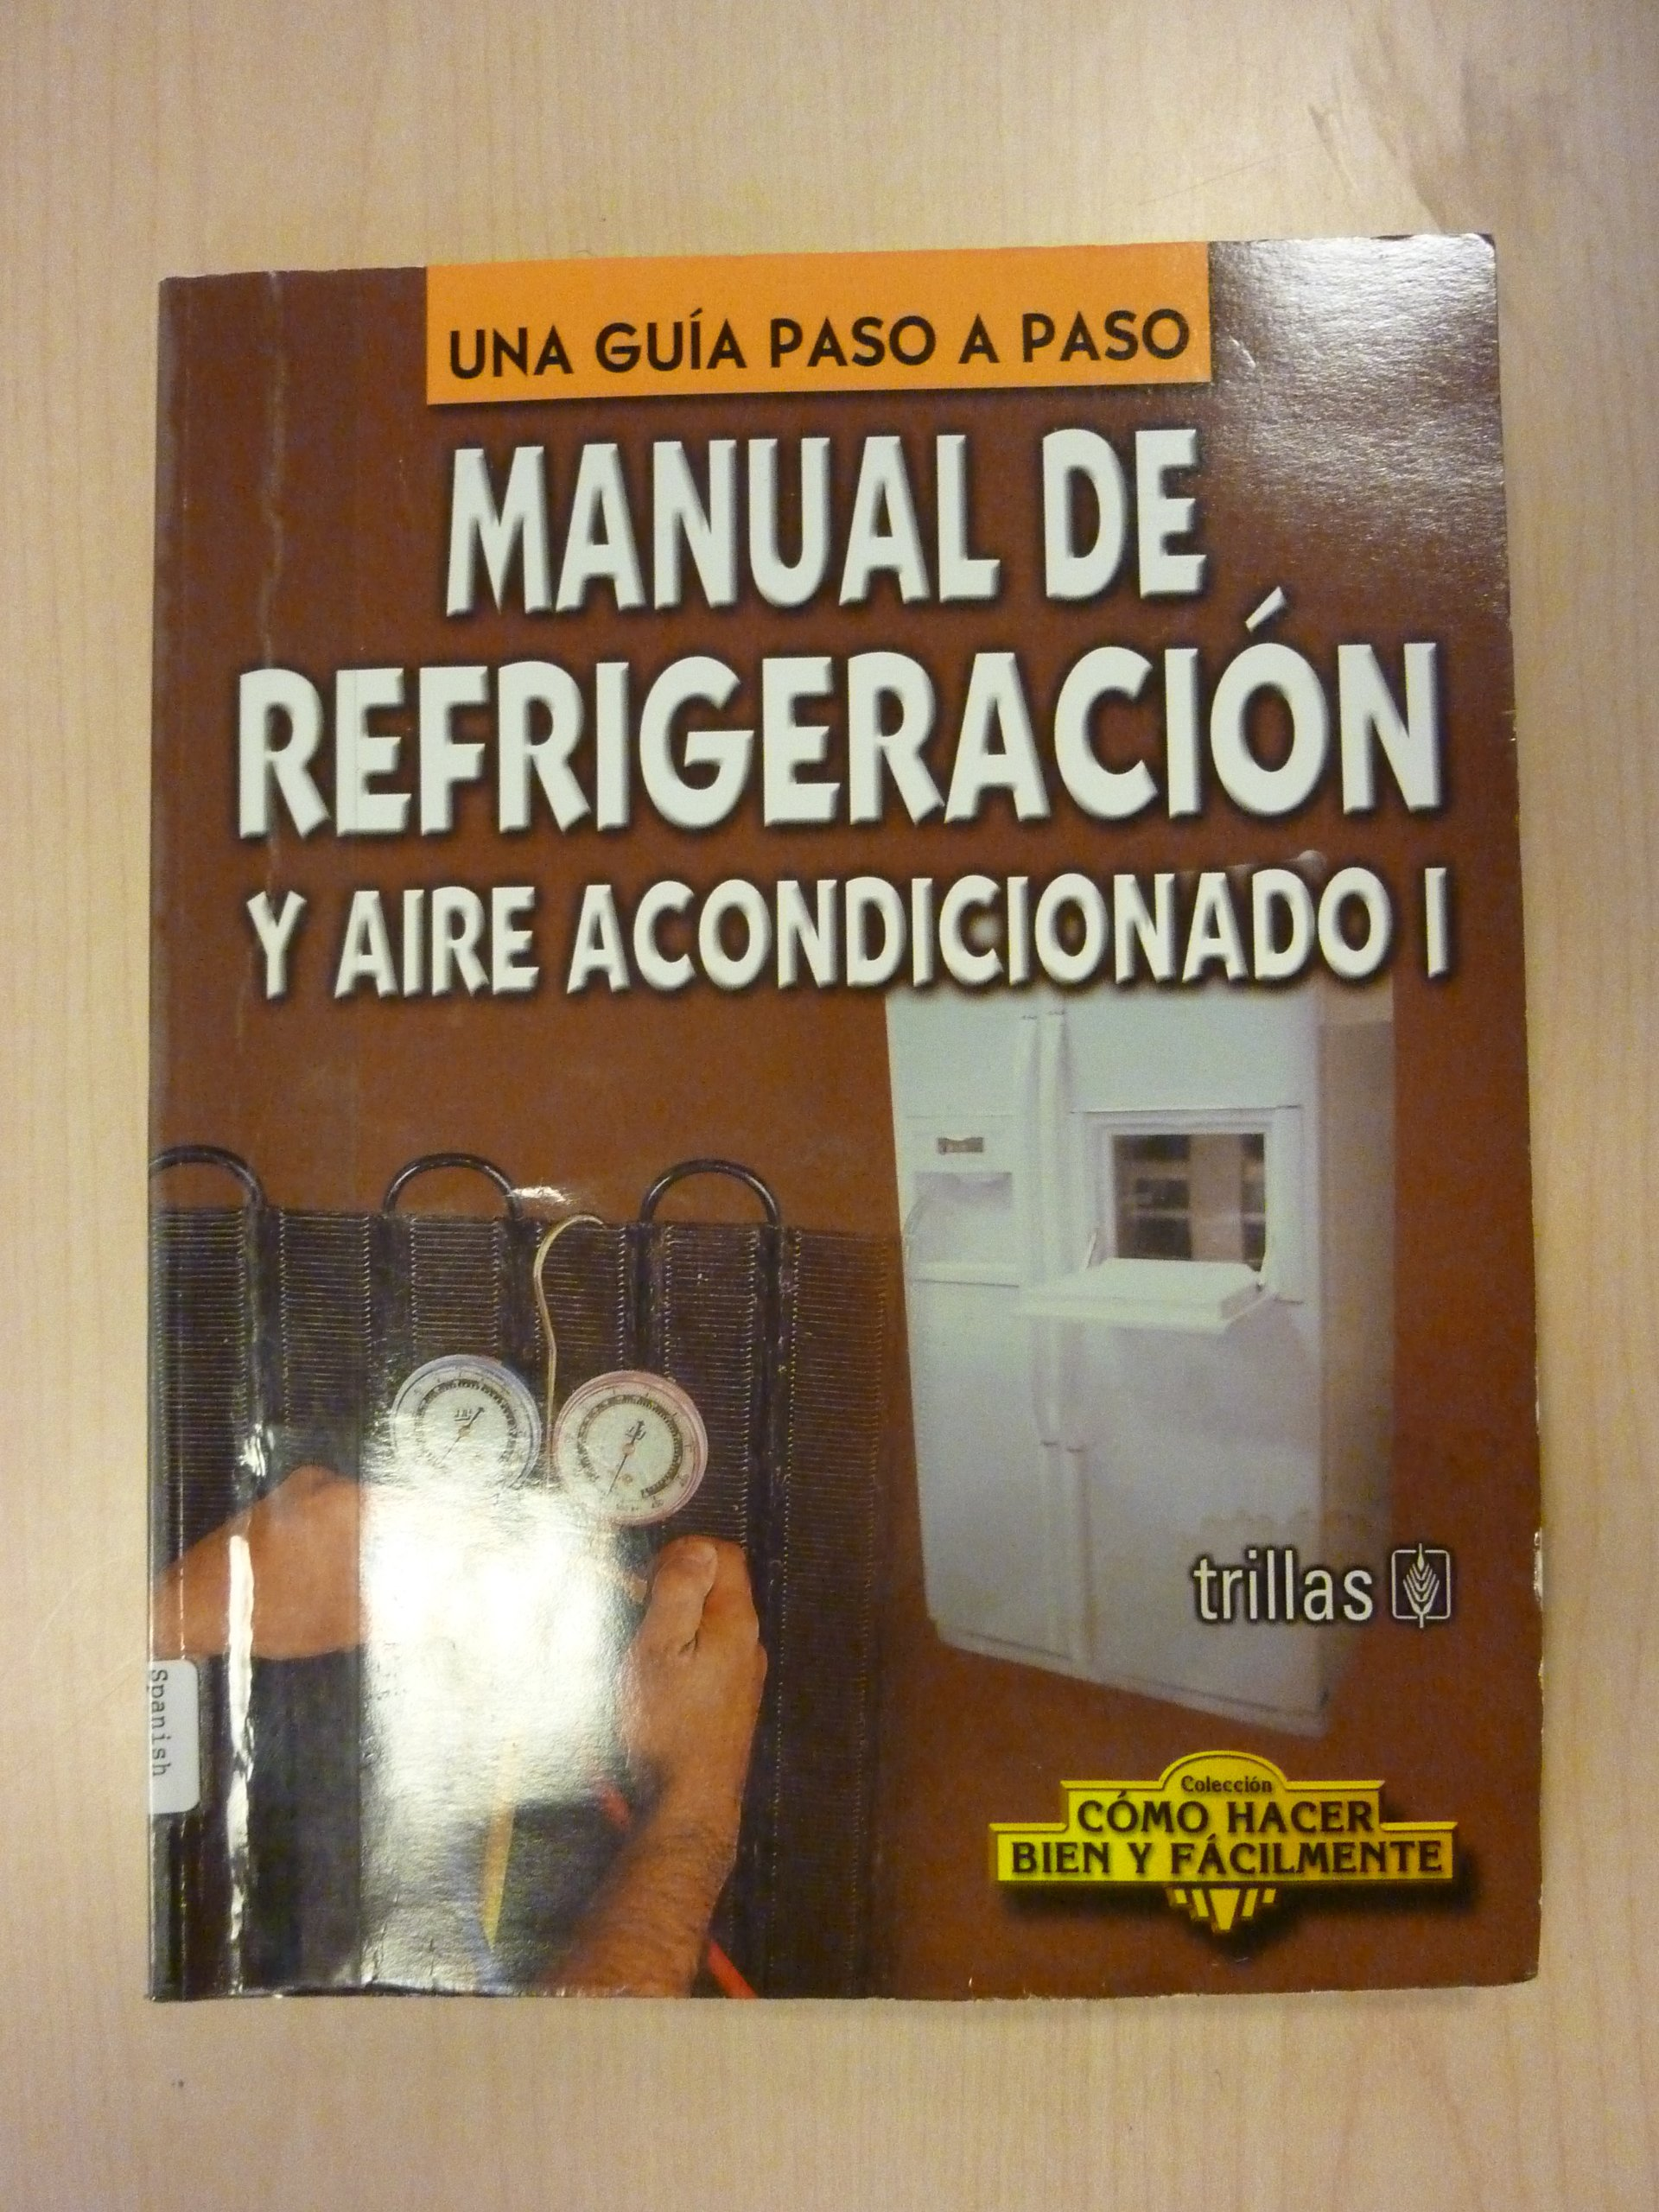 ... and Air Conditioning Guide (Como hacer bien y facilmente/ How to Do it Right and Easy) (Spanish Edition): Luis Lesur: 9789682467295: Amazon.com: Books